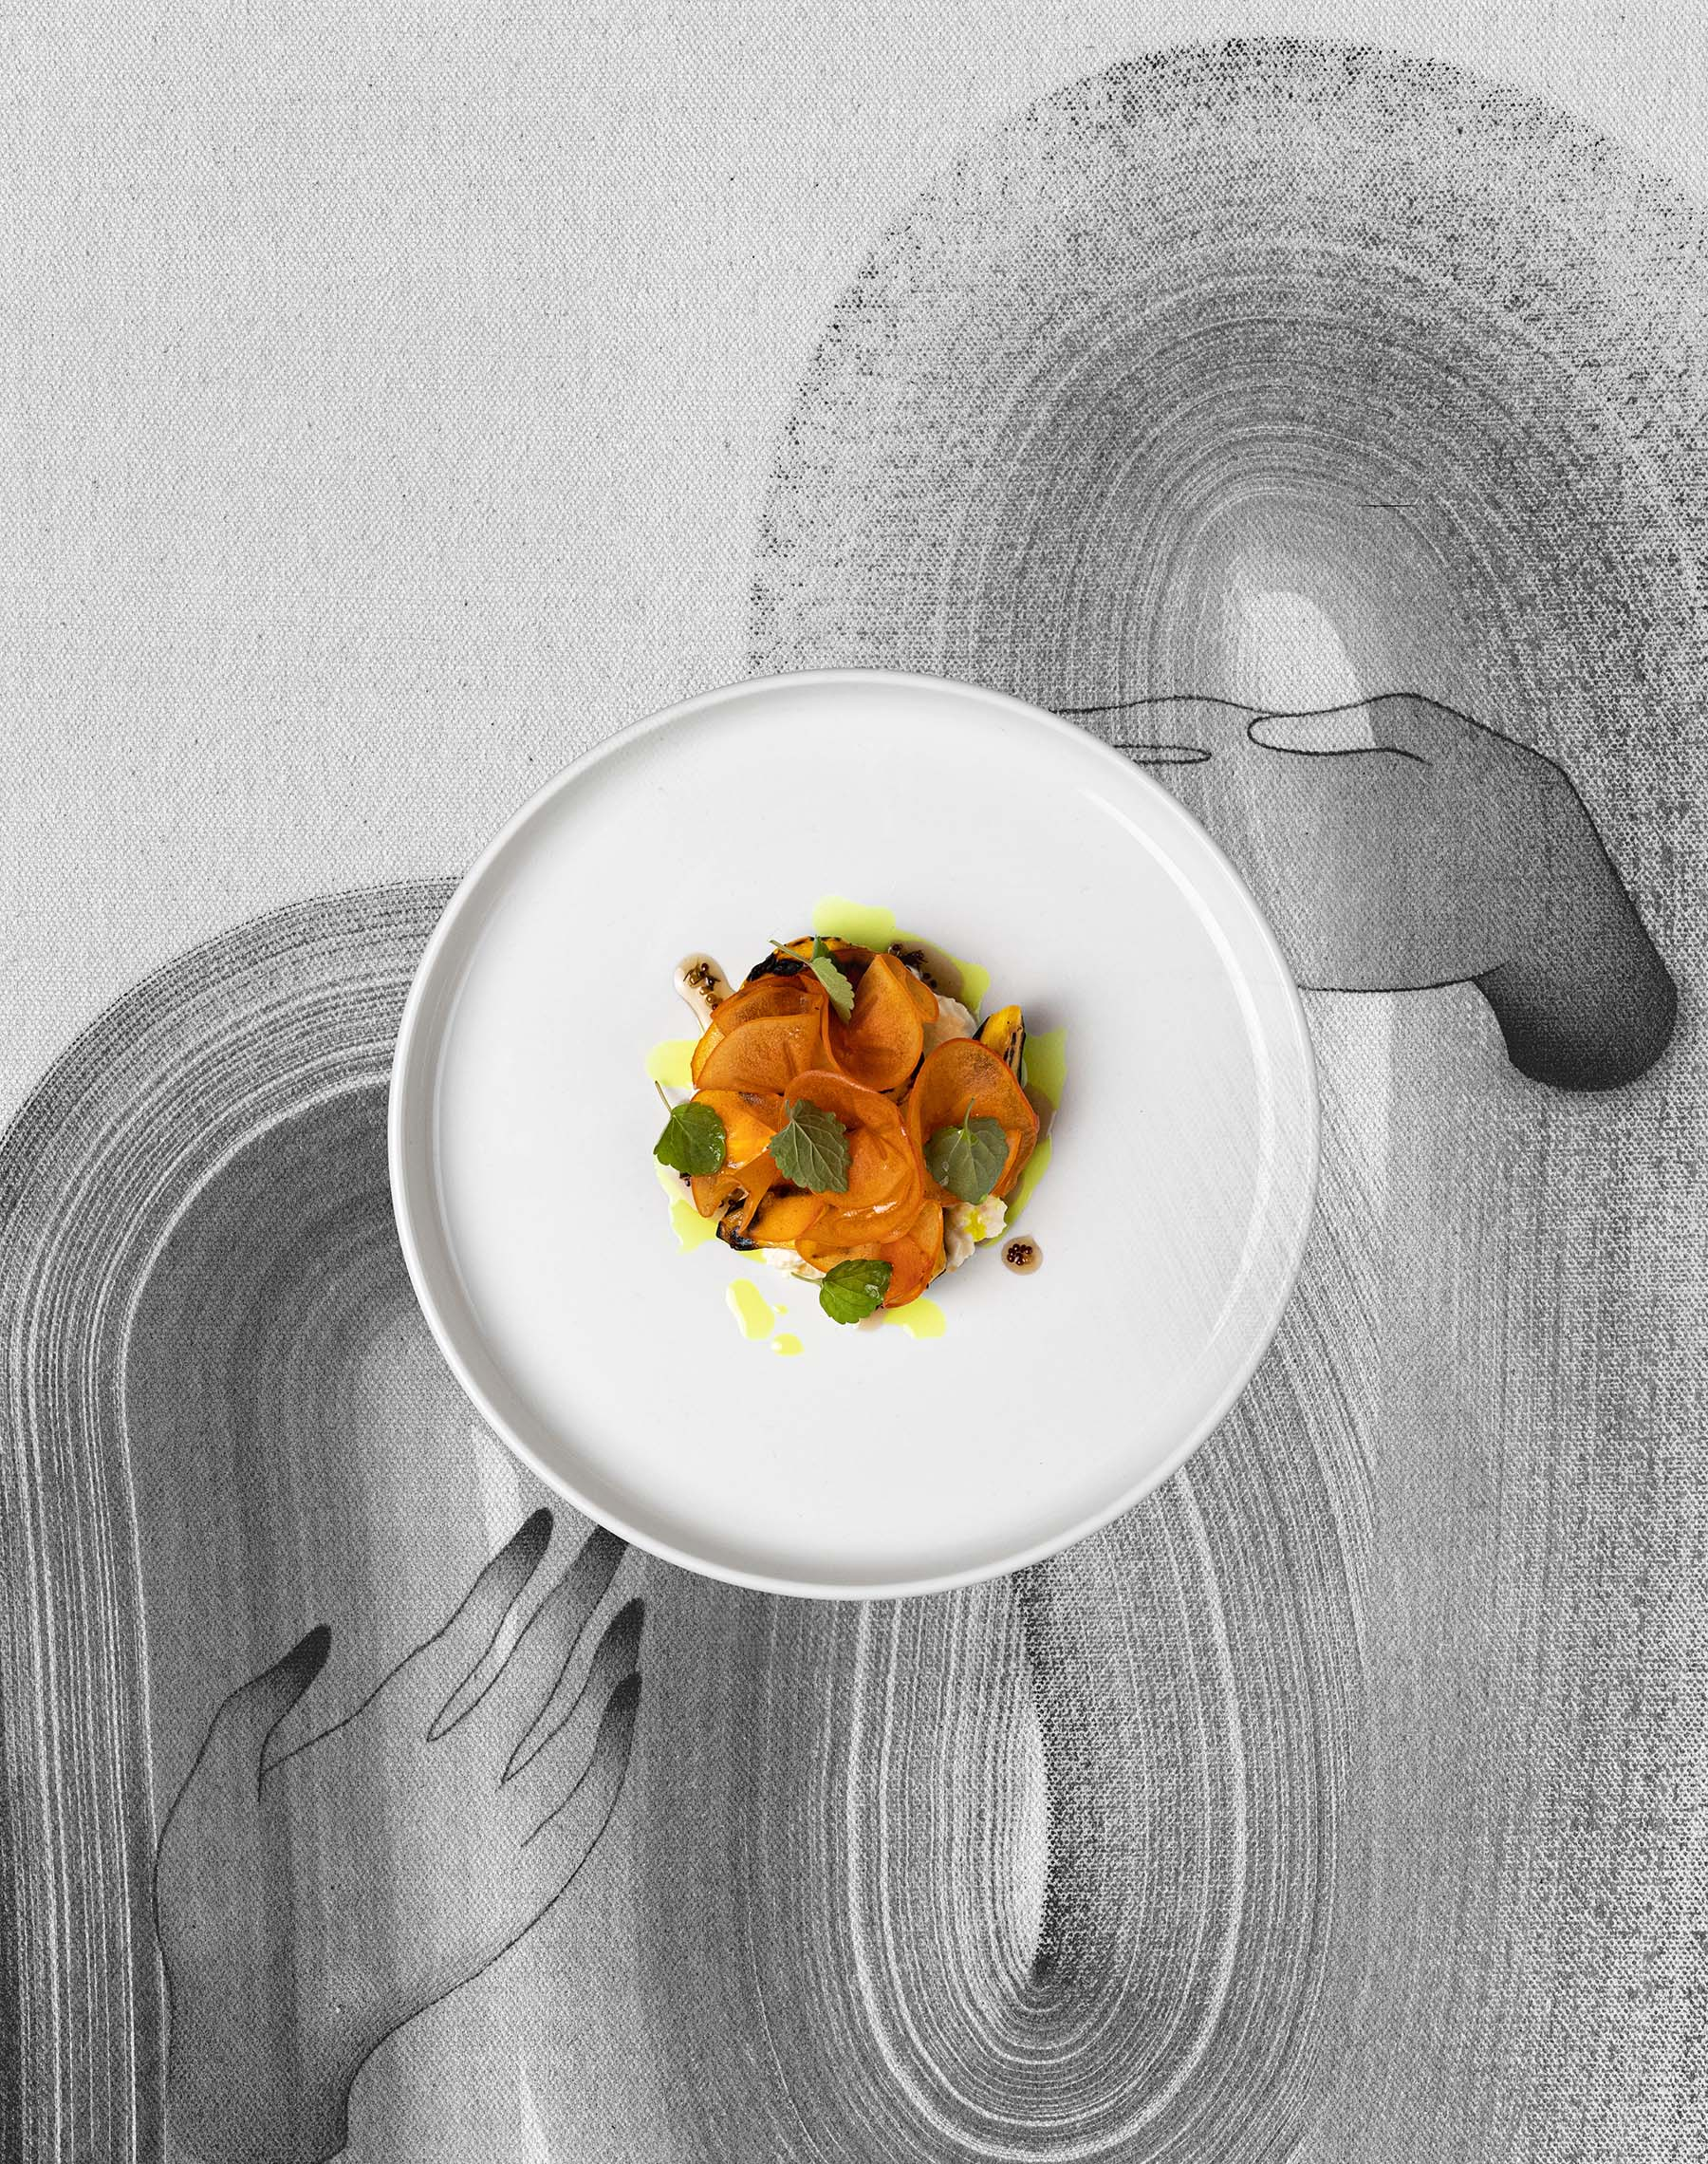 byMinistry's Enlightened Dining Club: The Art of Dining